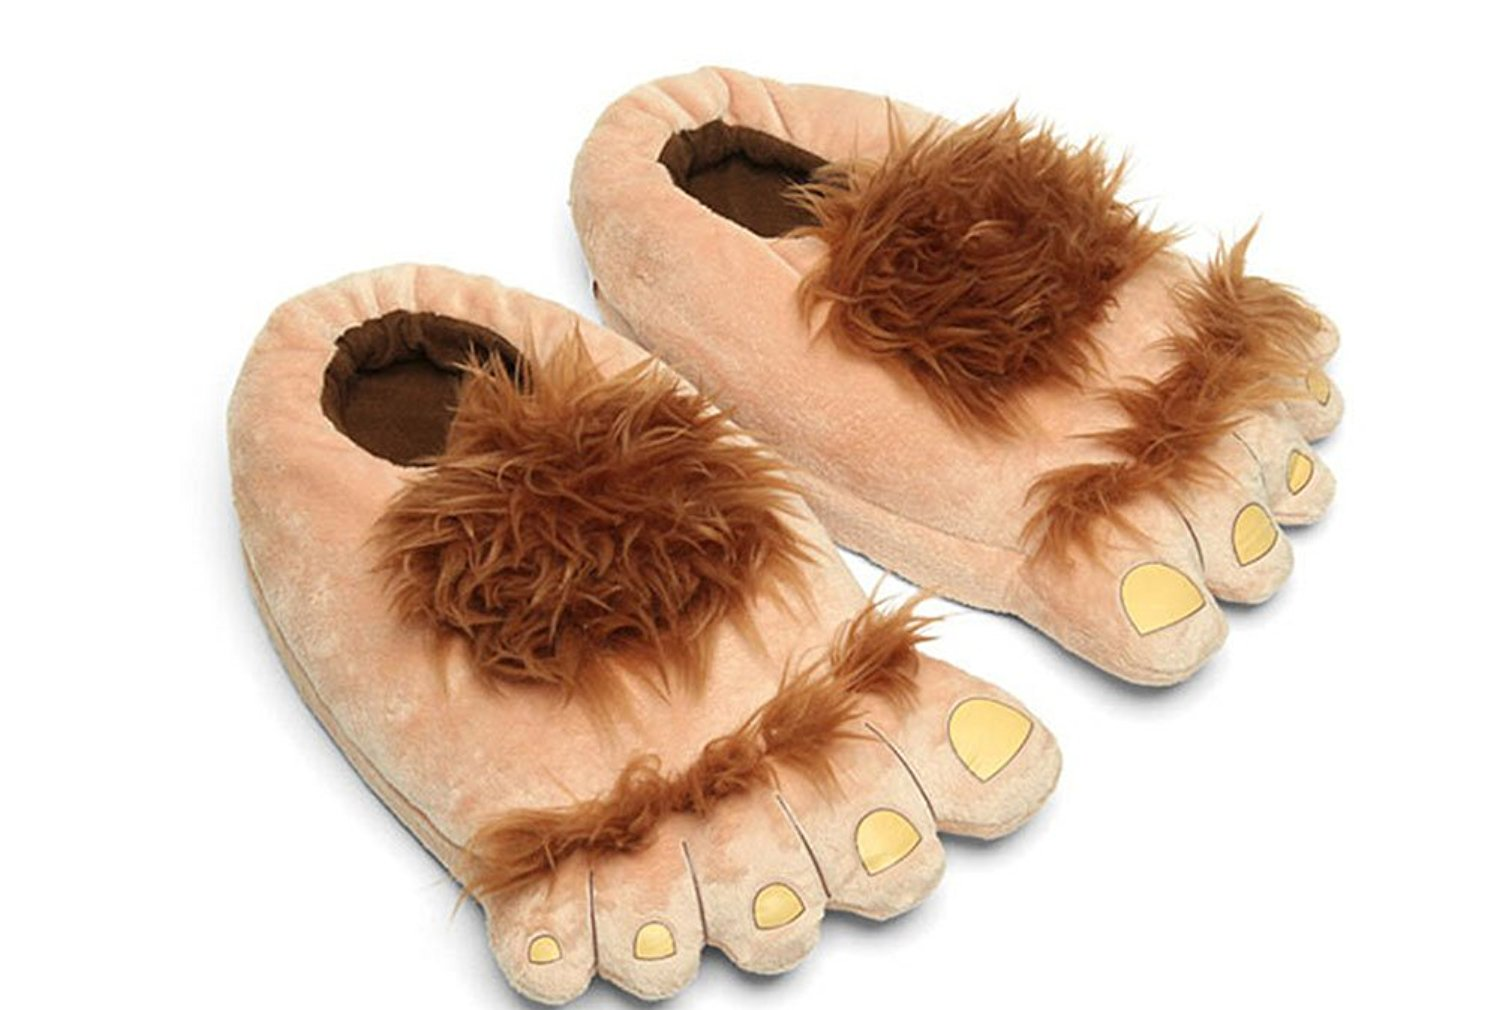 237698363c70 Veribuy Novelty Warm House Slippers Hobbit Savage Furry Adventure Slippers  For Adults